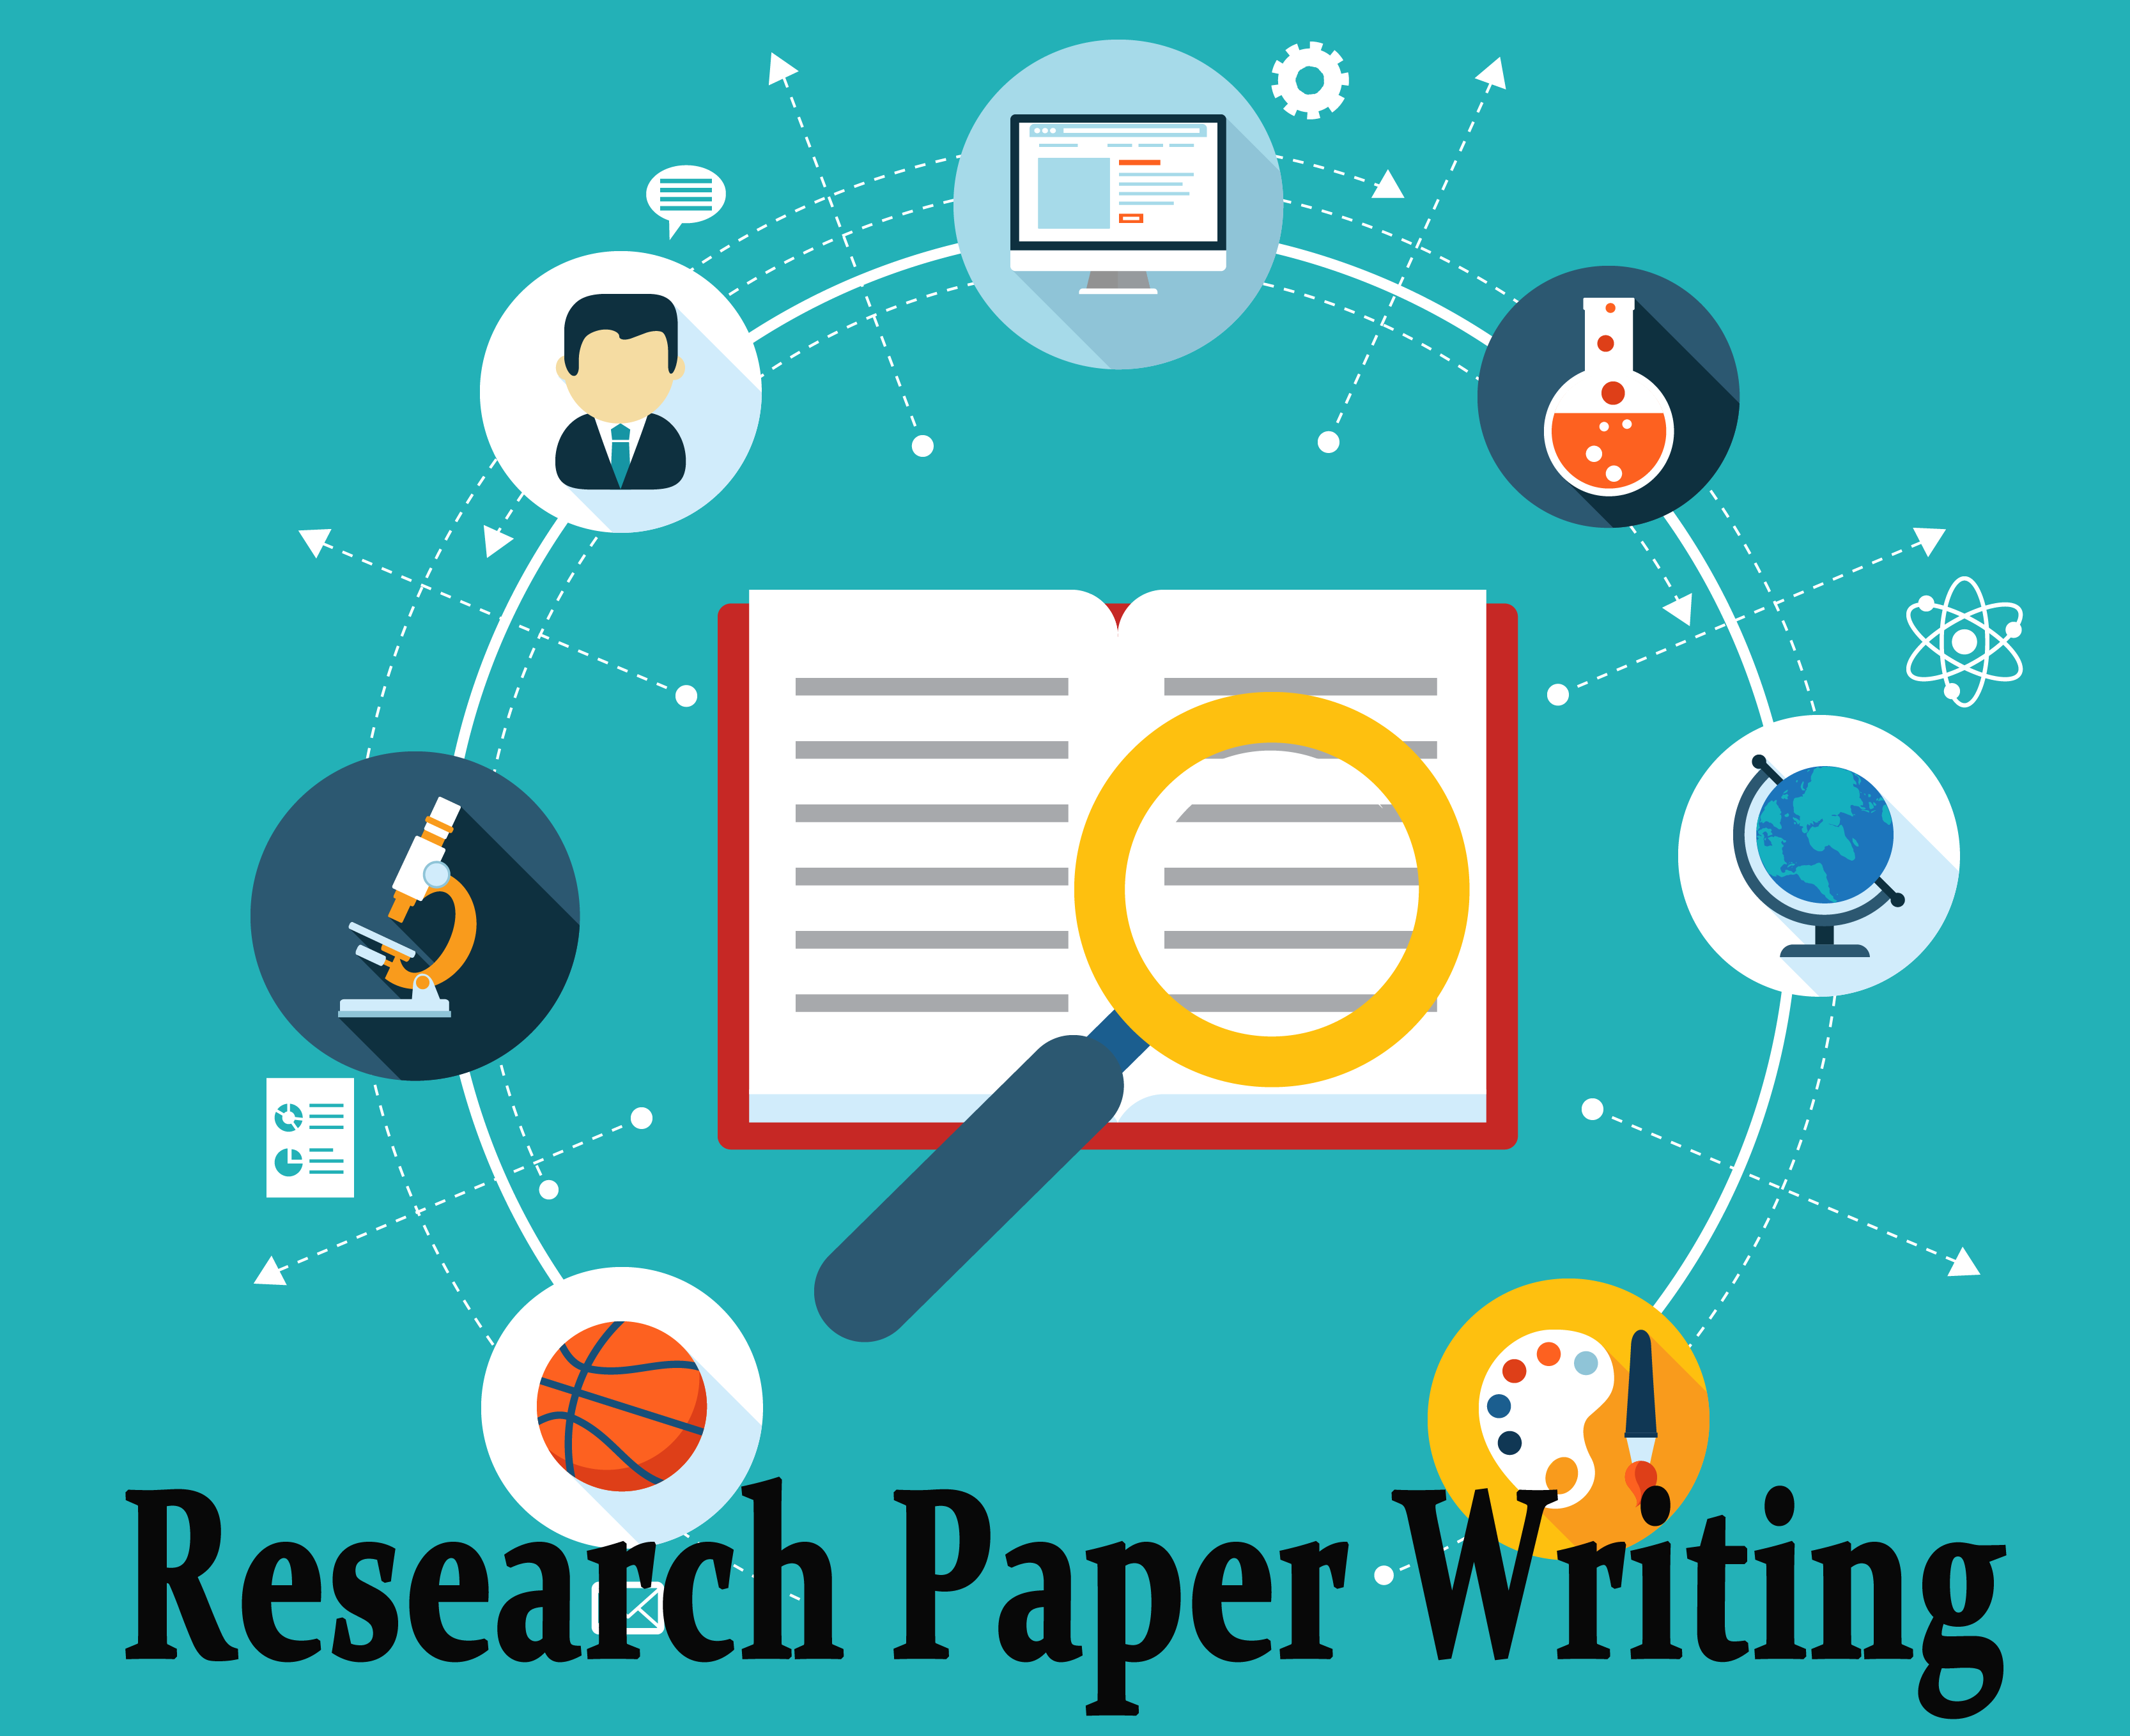 022 Writting Research Paper 503 Effective Writing Dreaded A Examples Of Abstracts Apa Introduction Example Sample Abstract Full